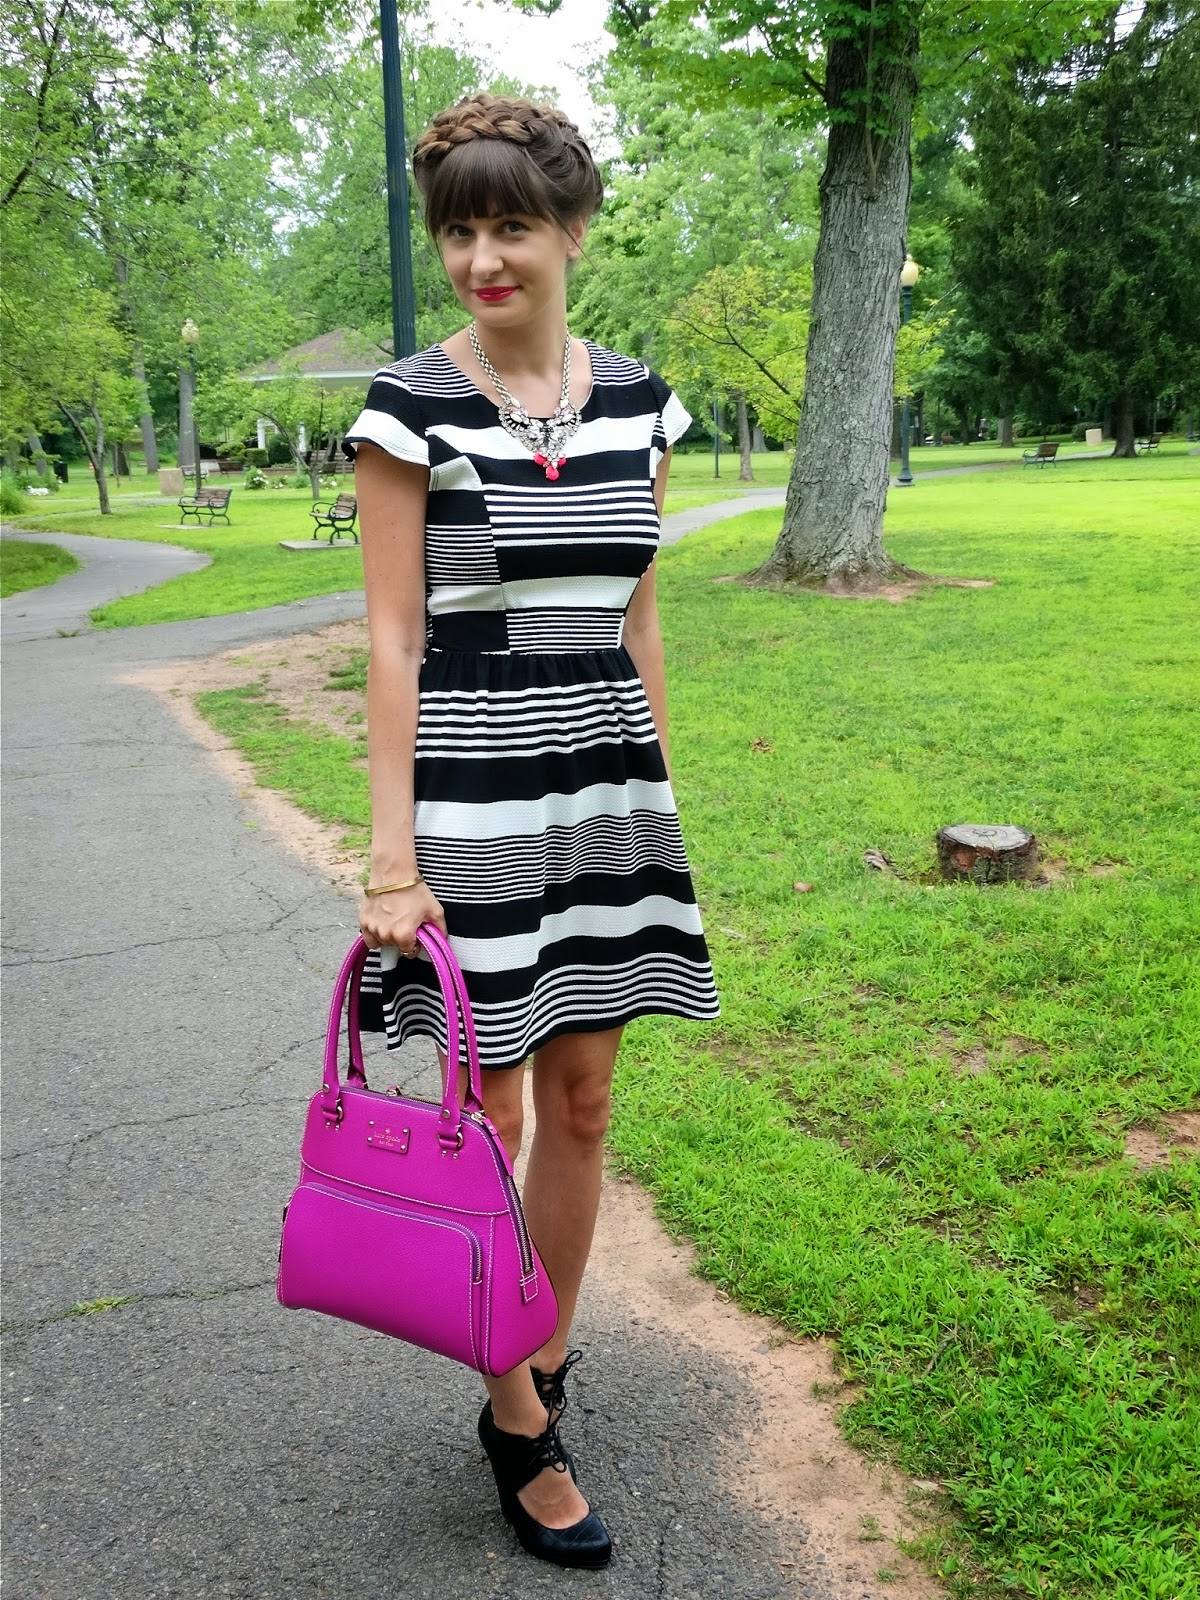 Black and White Striped Dress, Kate Spade New York Bag | www.houseofjeffers.com